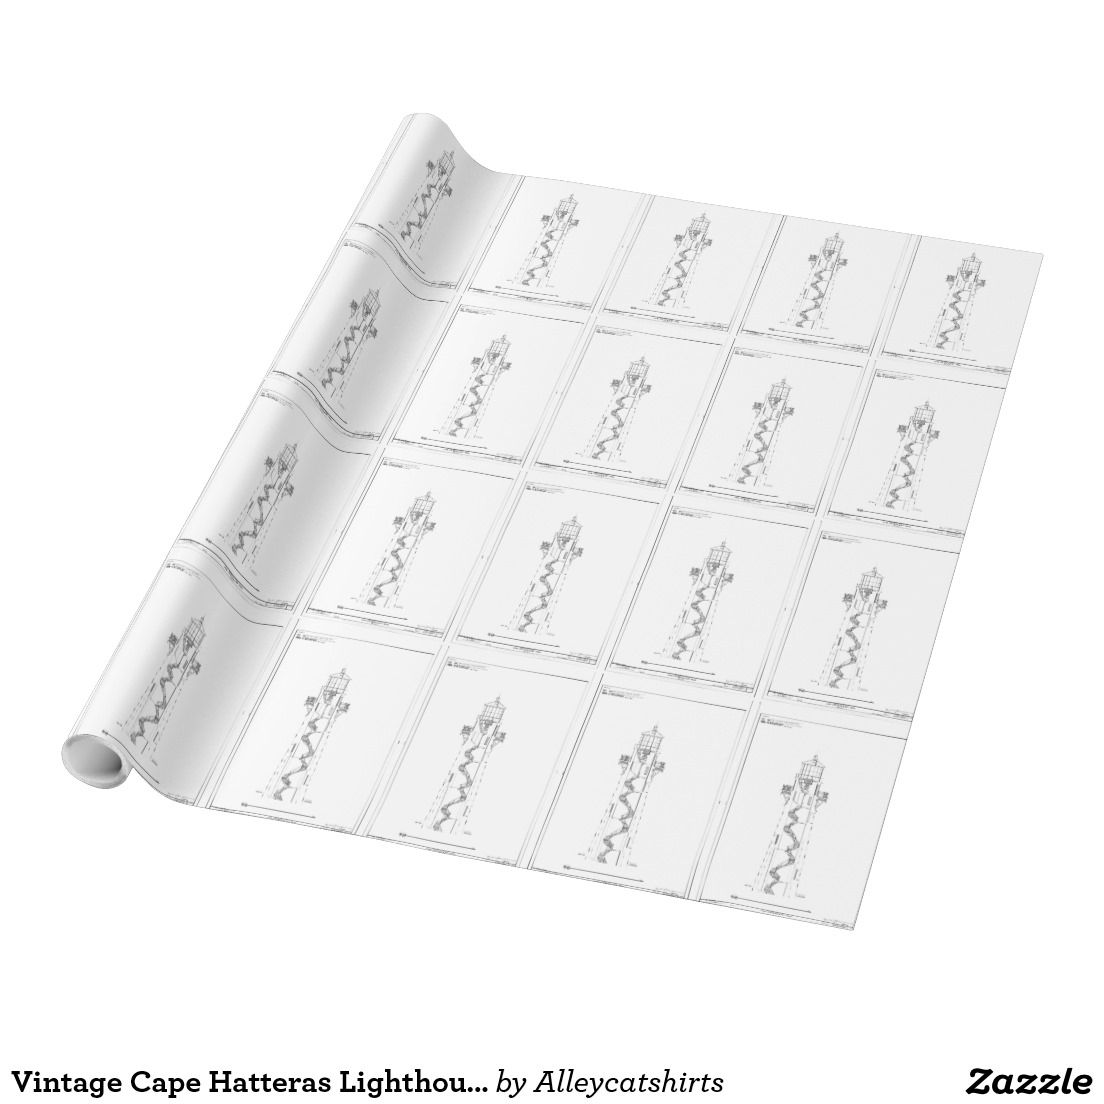 Vintage cape hatteras lighthouse blueprint 2 wrapping paper vintage cape hatteras lighthouse blueprint 2 wrapping paper malvernweather